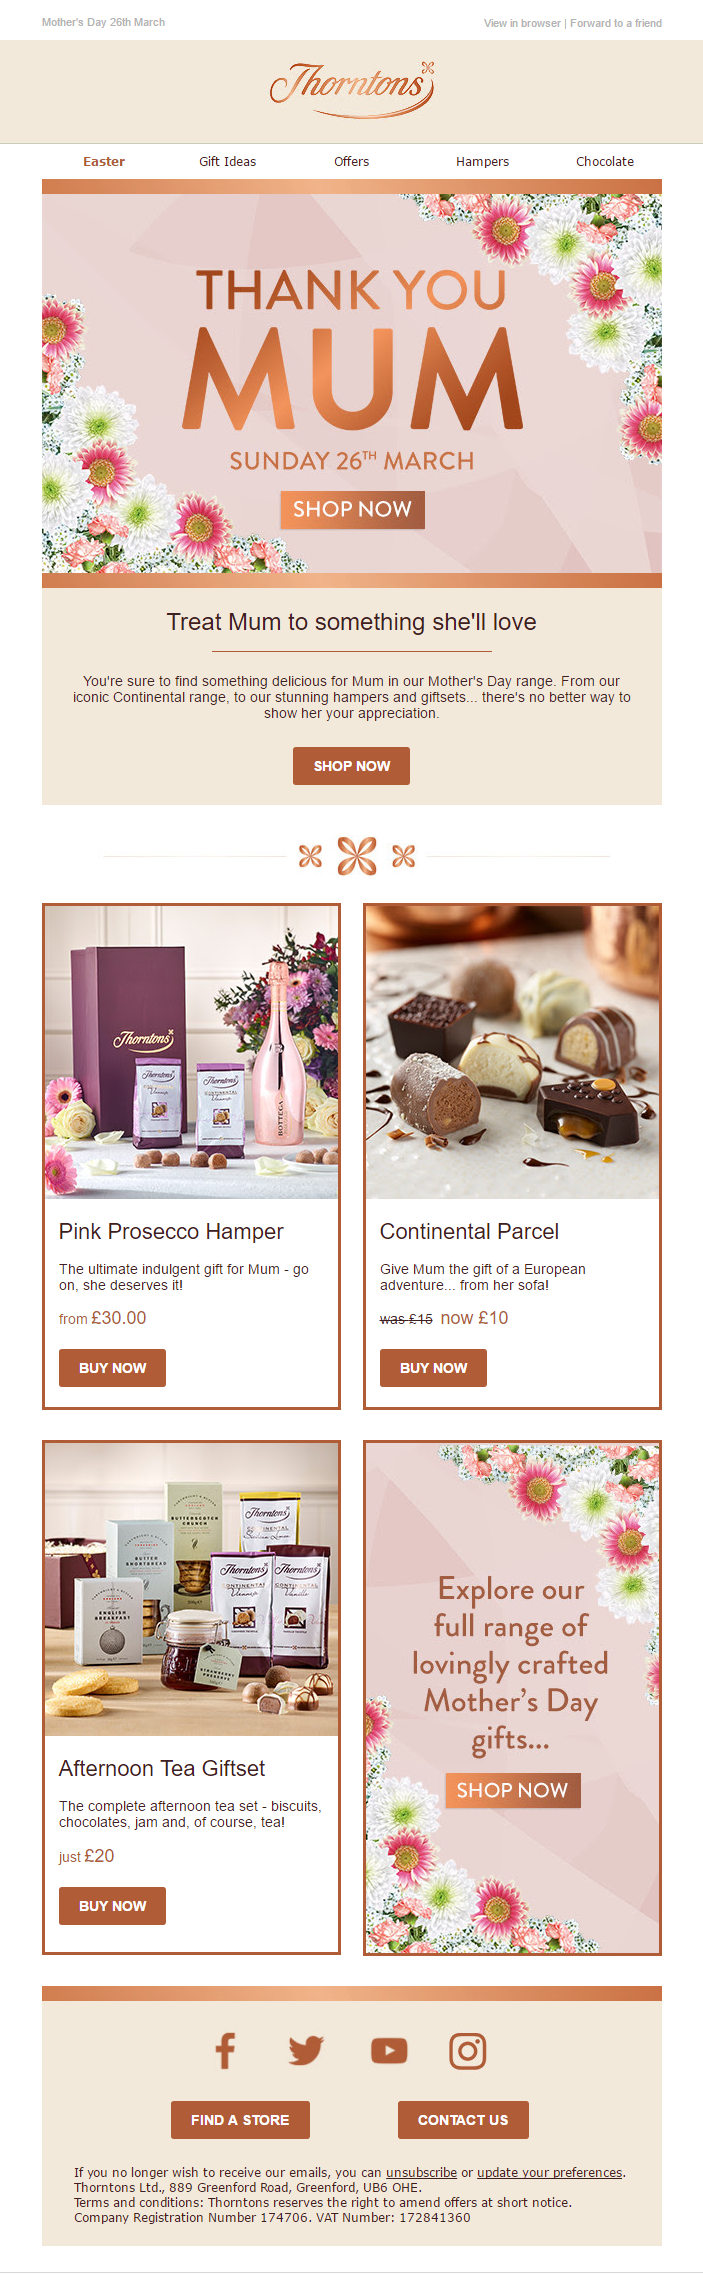 Mothers day email with product recommendations from thorntons mothers day email with product recommendations from thorntons emailmarketing email marketing gifts negle Choice Image